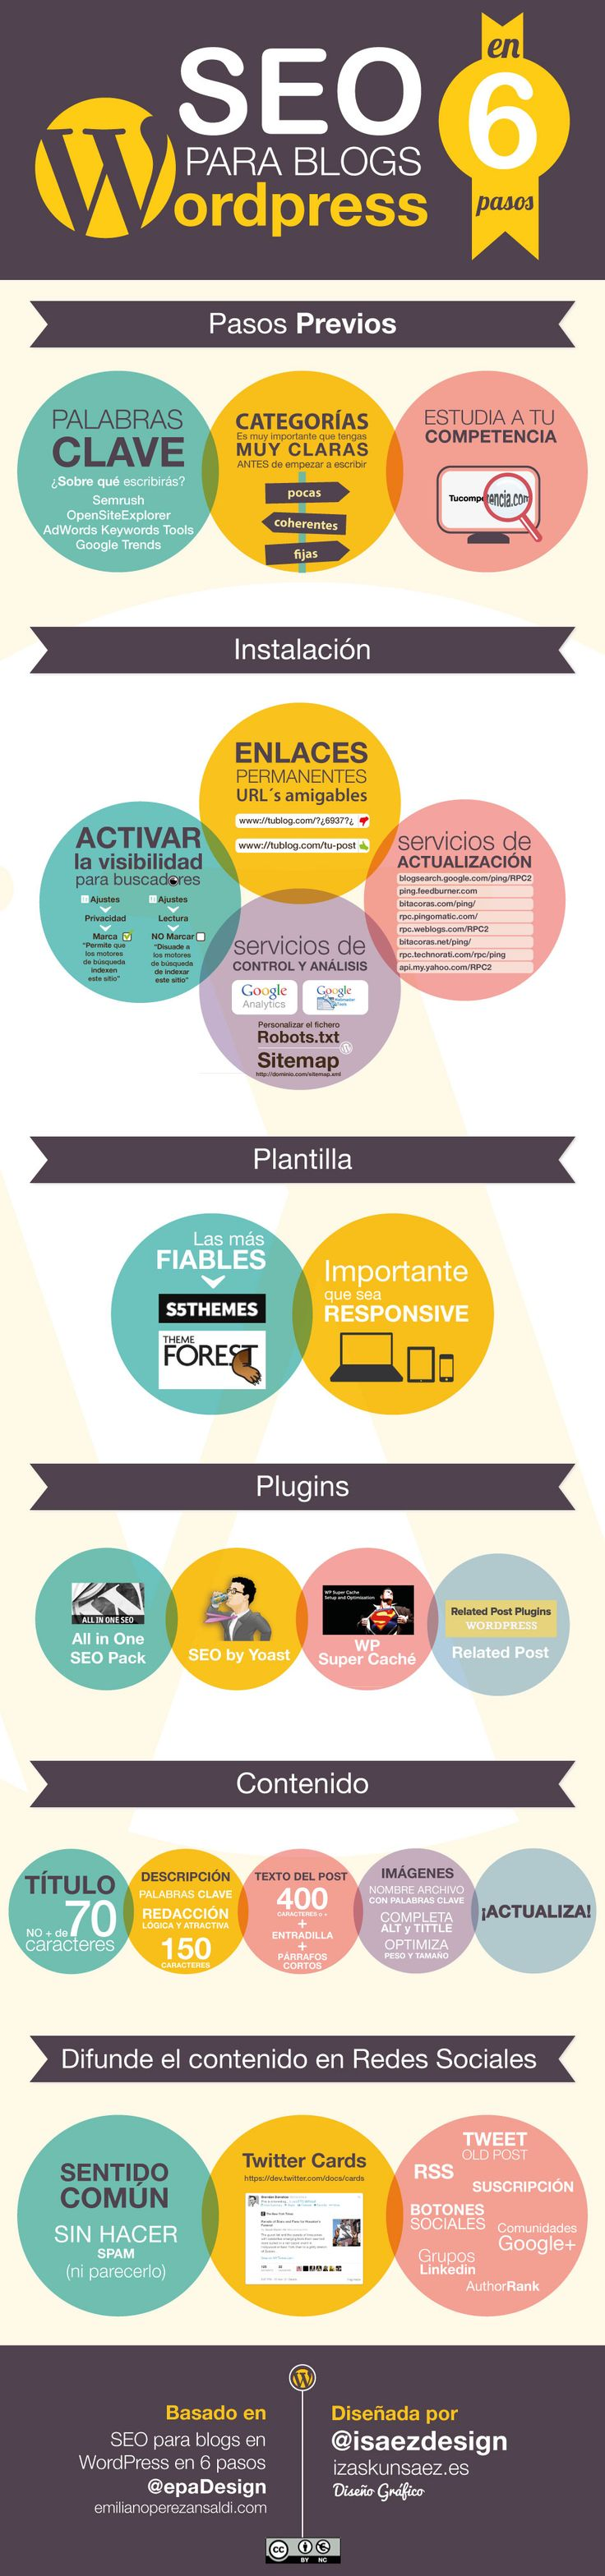 SEO para blogs de Wordpress en 6 pasos #infografia #infographic #seo